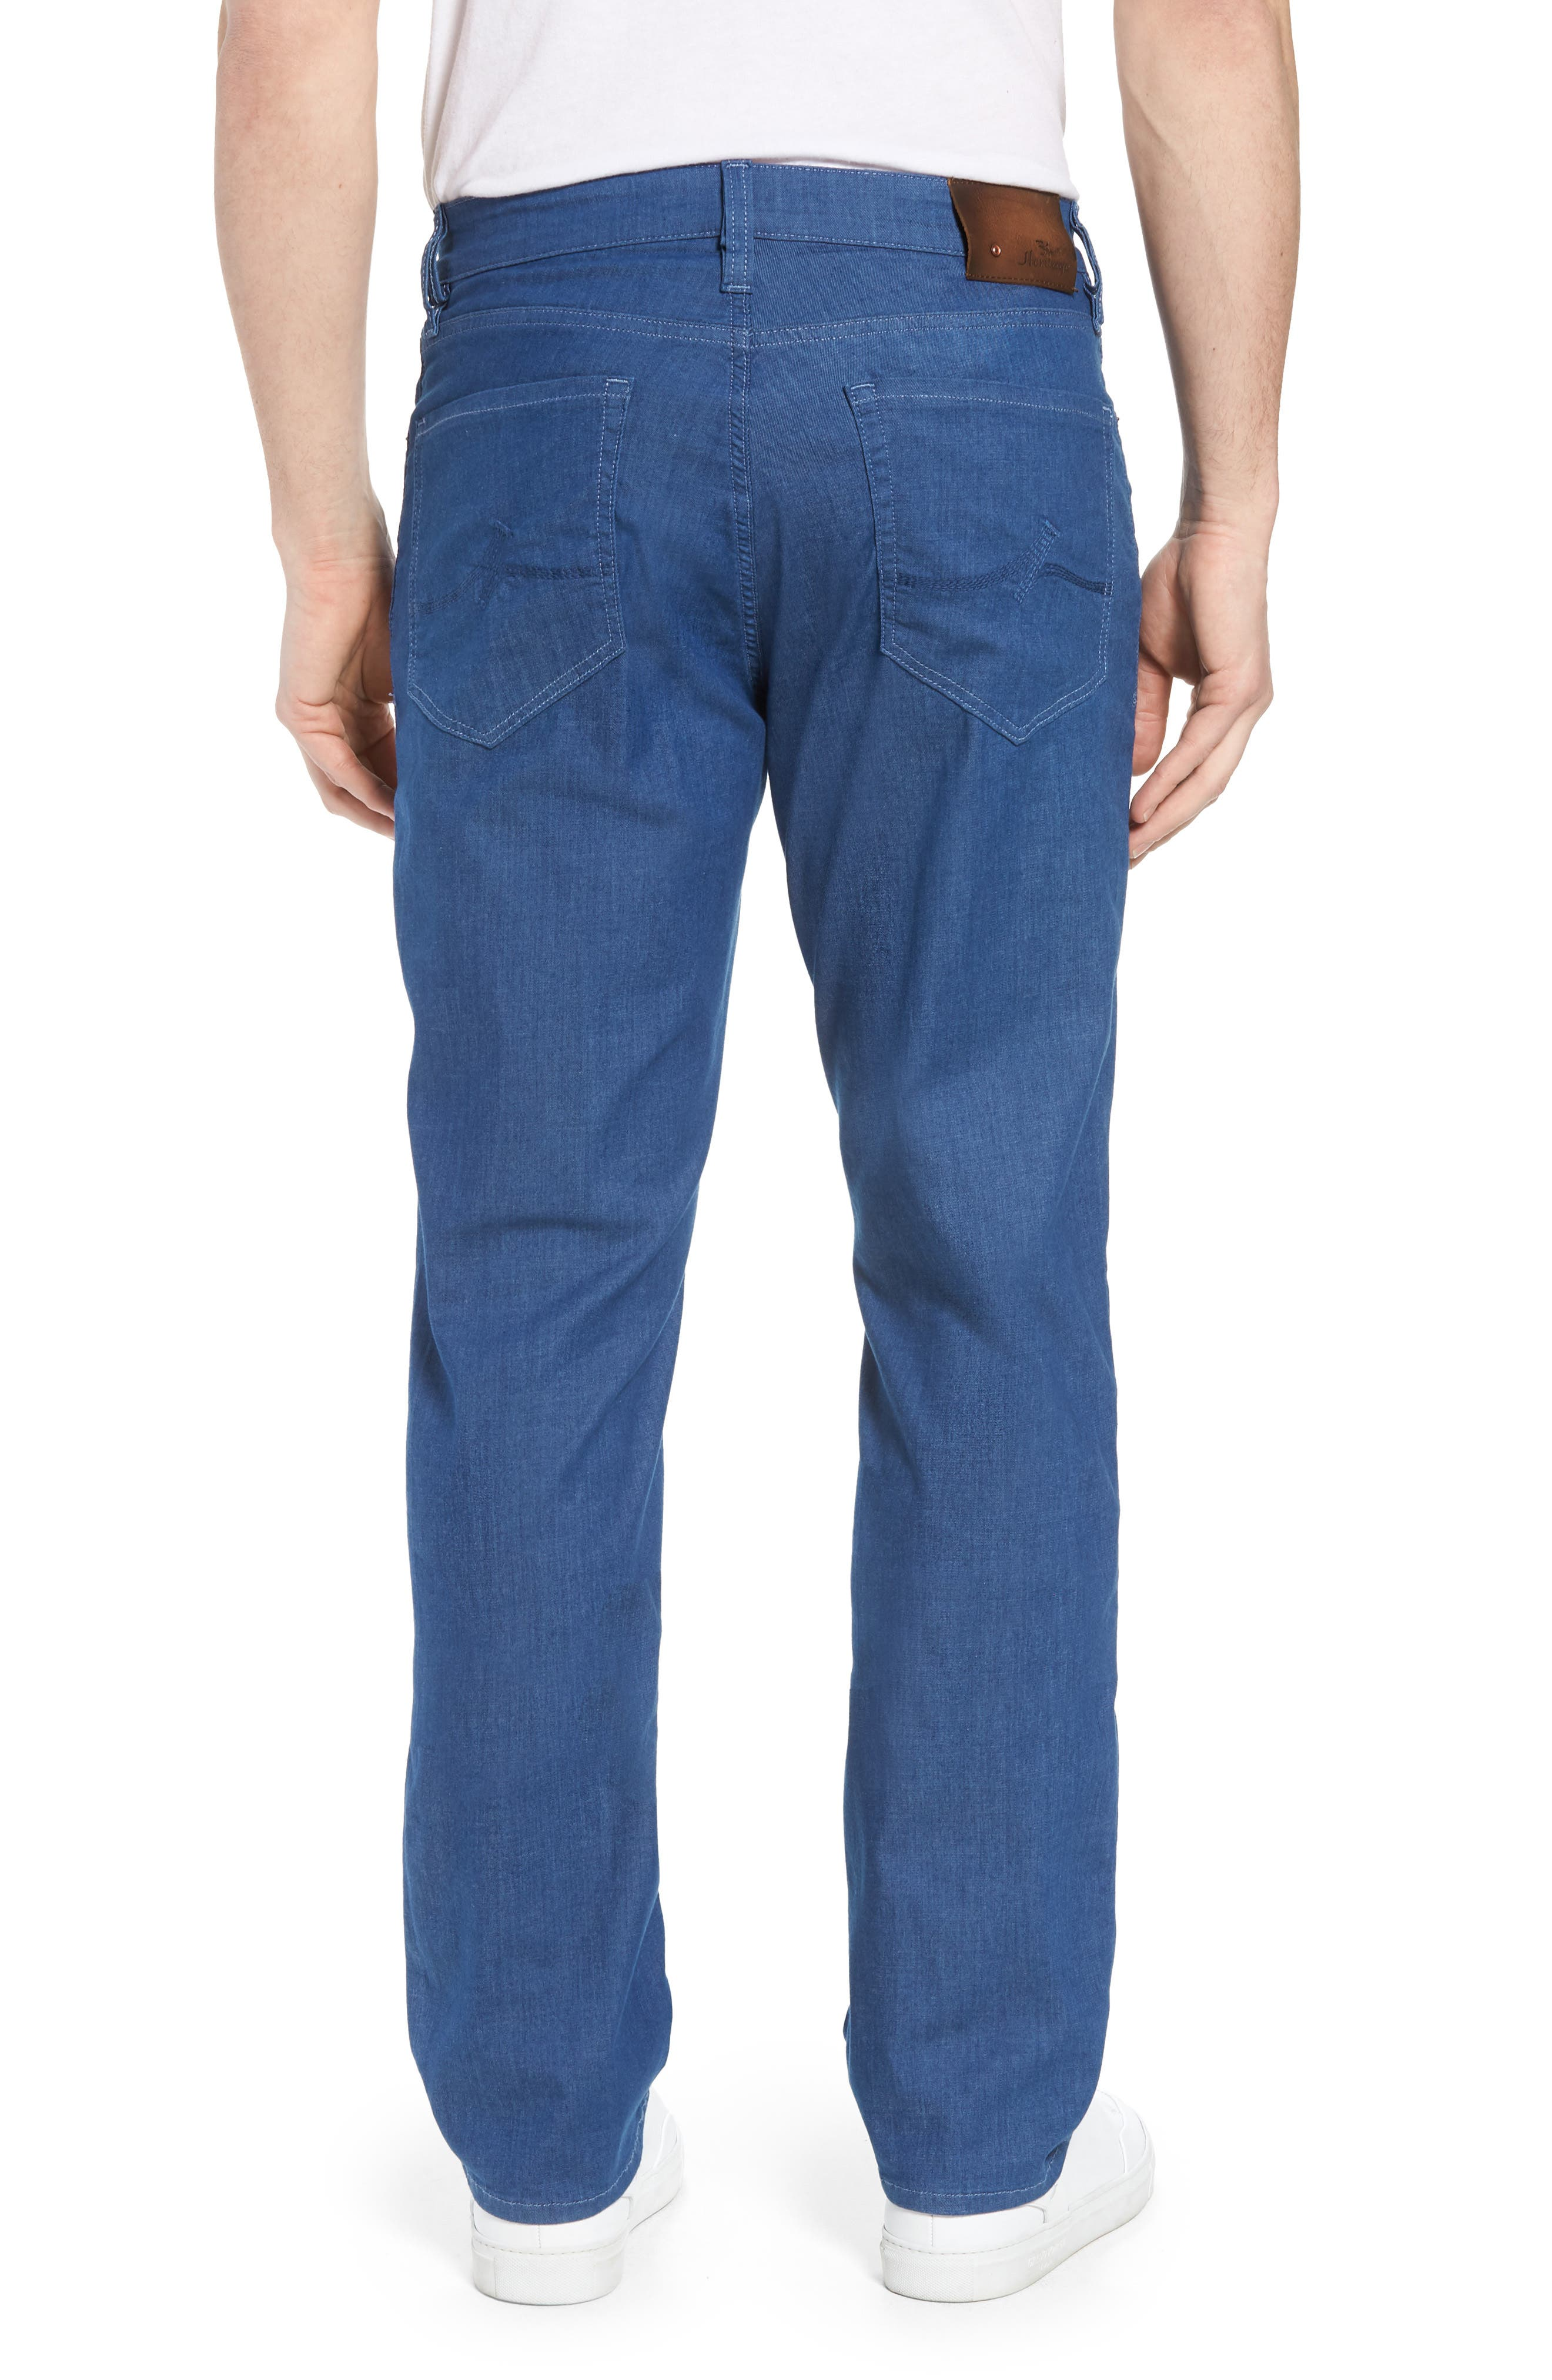 Alternate Image 2  - 34 Heritage Charisma Relaxed Fit Jeans (Mid Maui Denim)